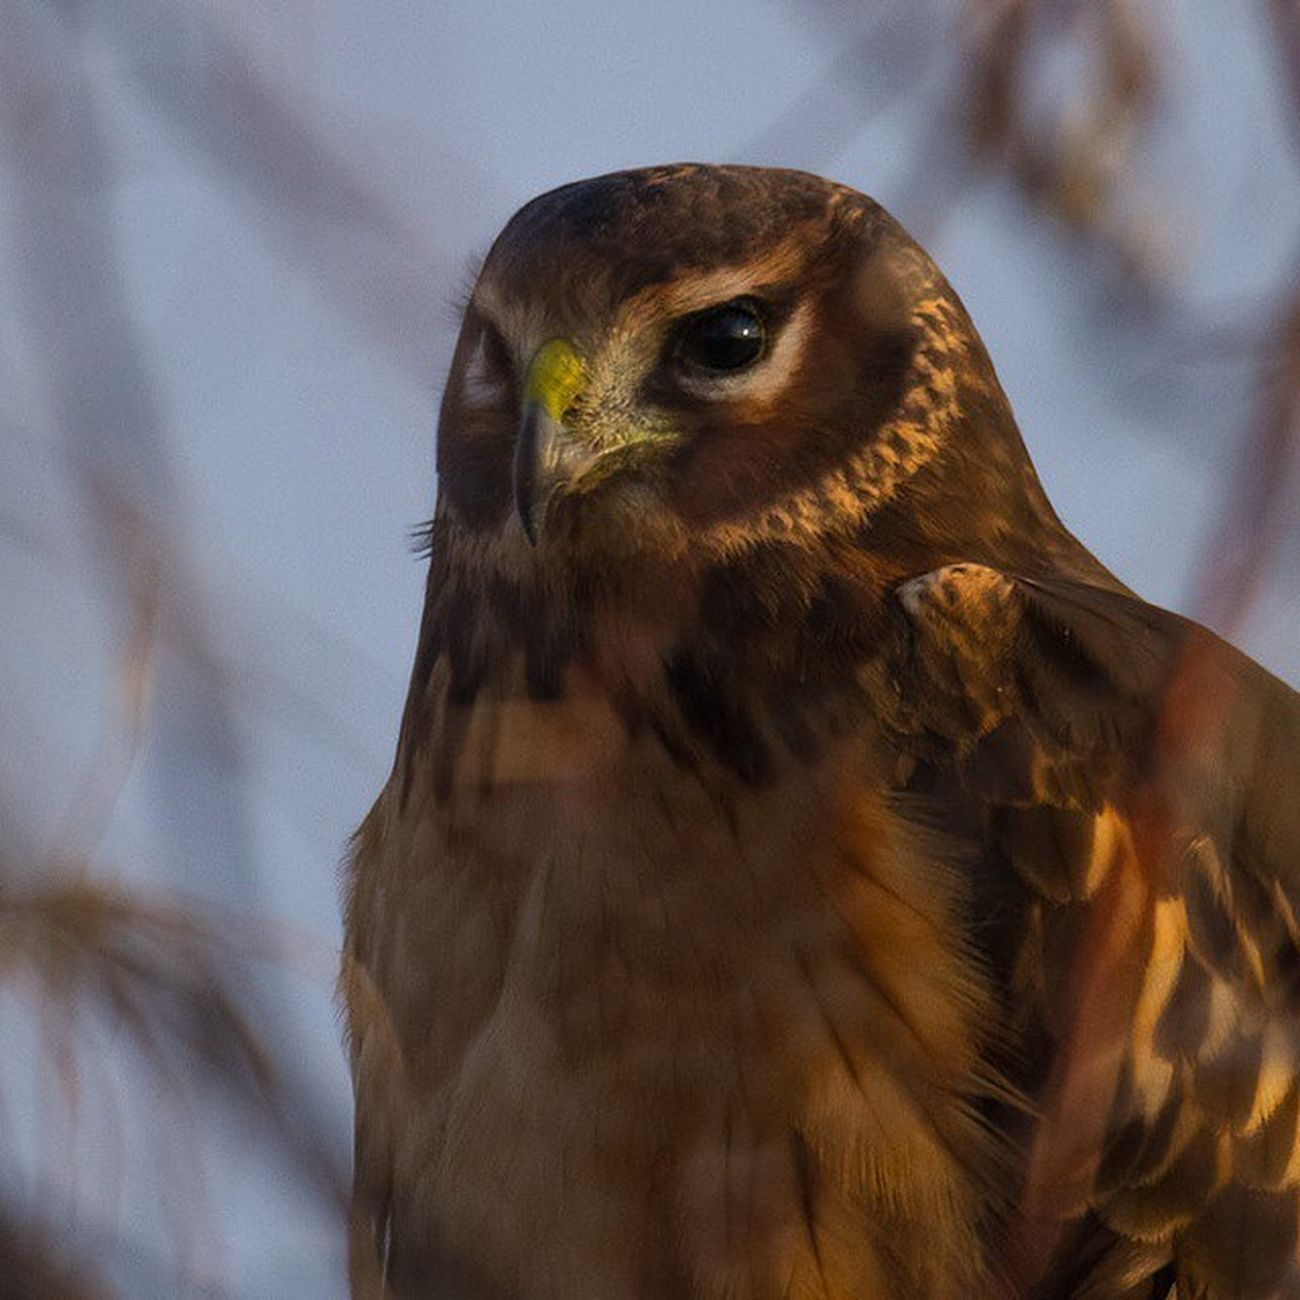 Went to the refuge and spotted this female Northern Harrier hidden behind limbs. Nofilter Bird Birdwatching Utah Northernharrier Hawk Nature_shooters Natureaddict Nature Lovers Picoftheday